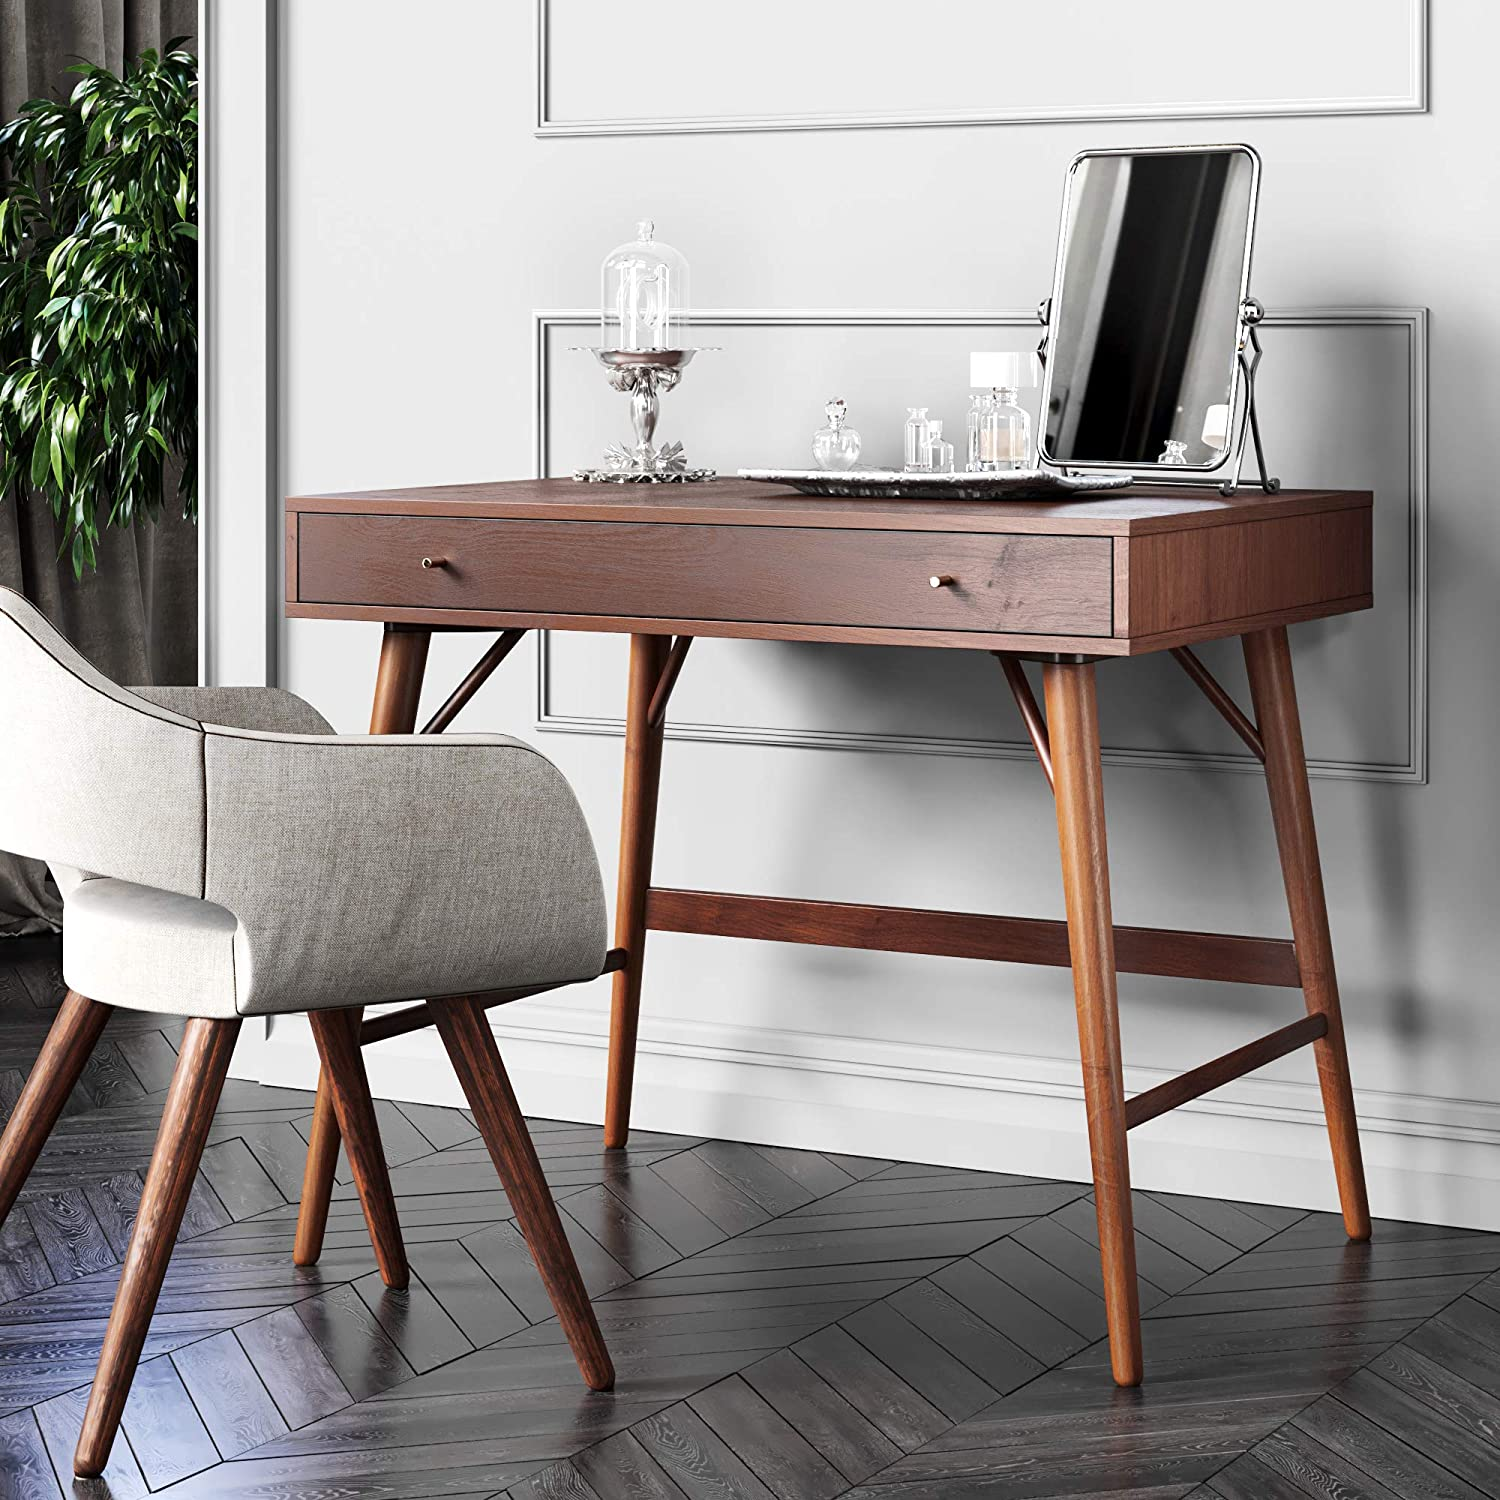 Bonny Wood Desk Mid Century Modern For Home Office Small Writing Station Amazon Ca Home Kitchen